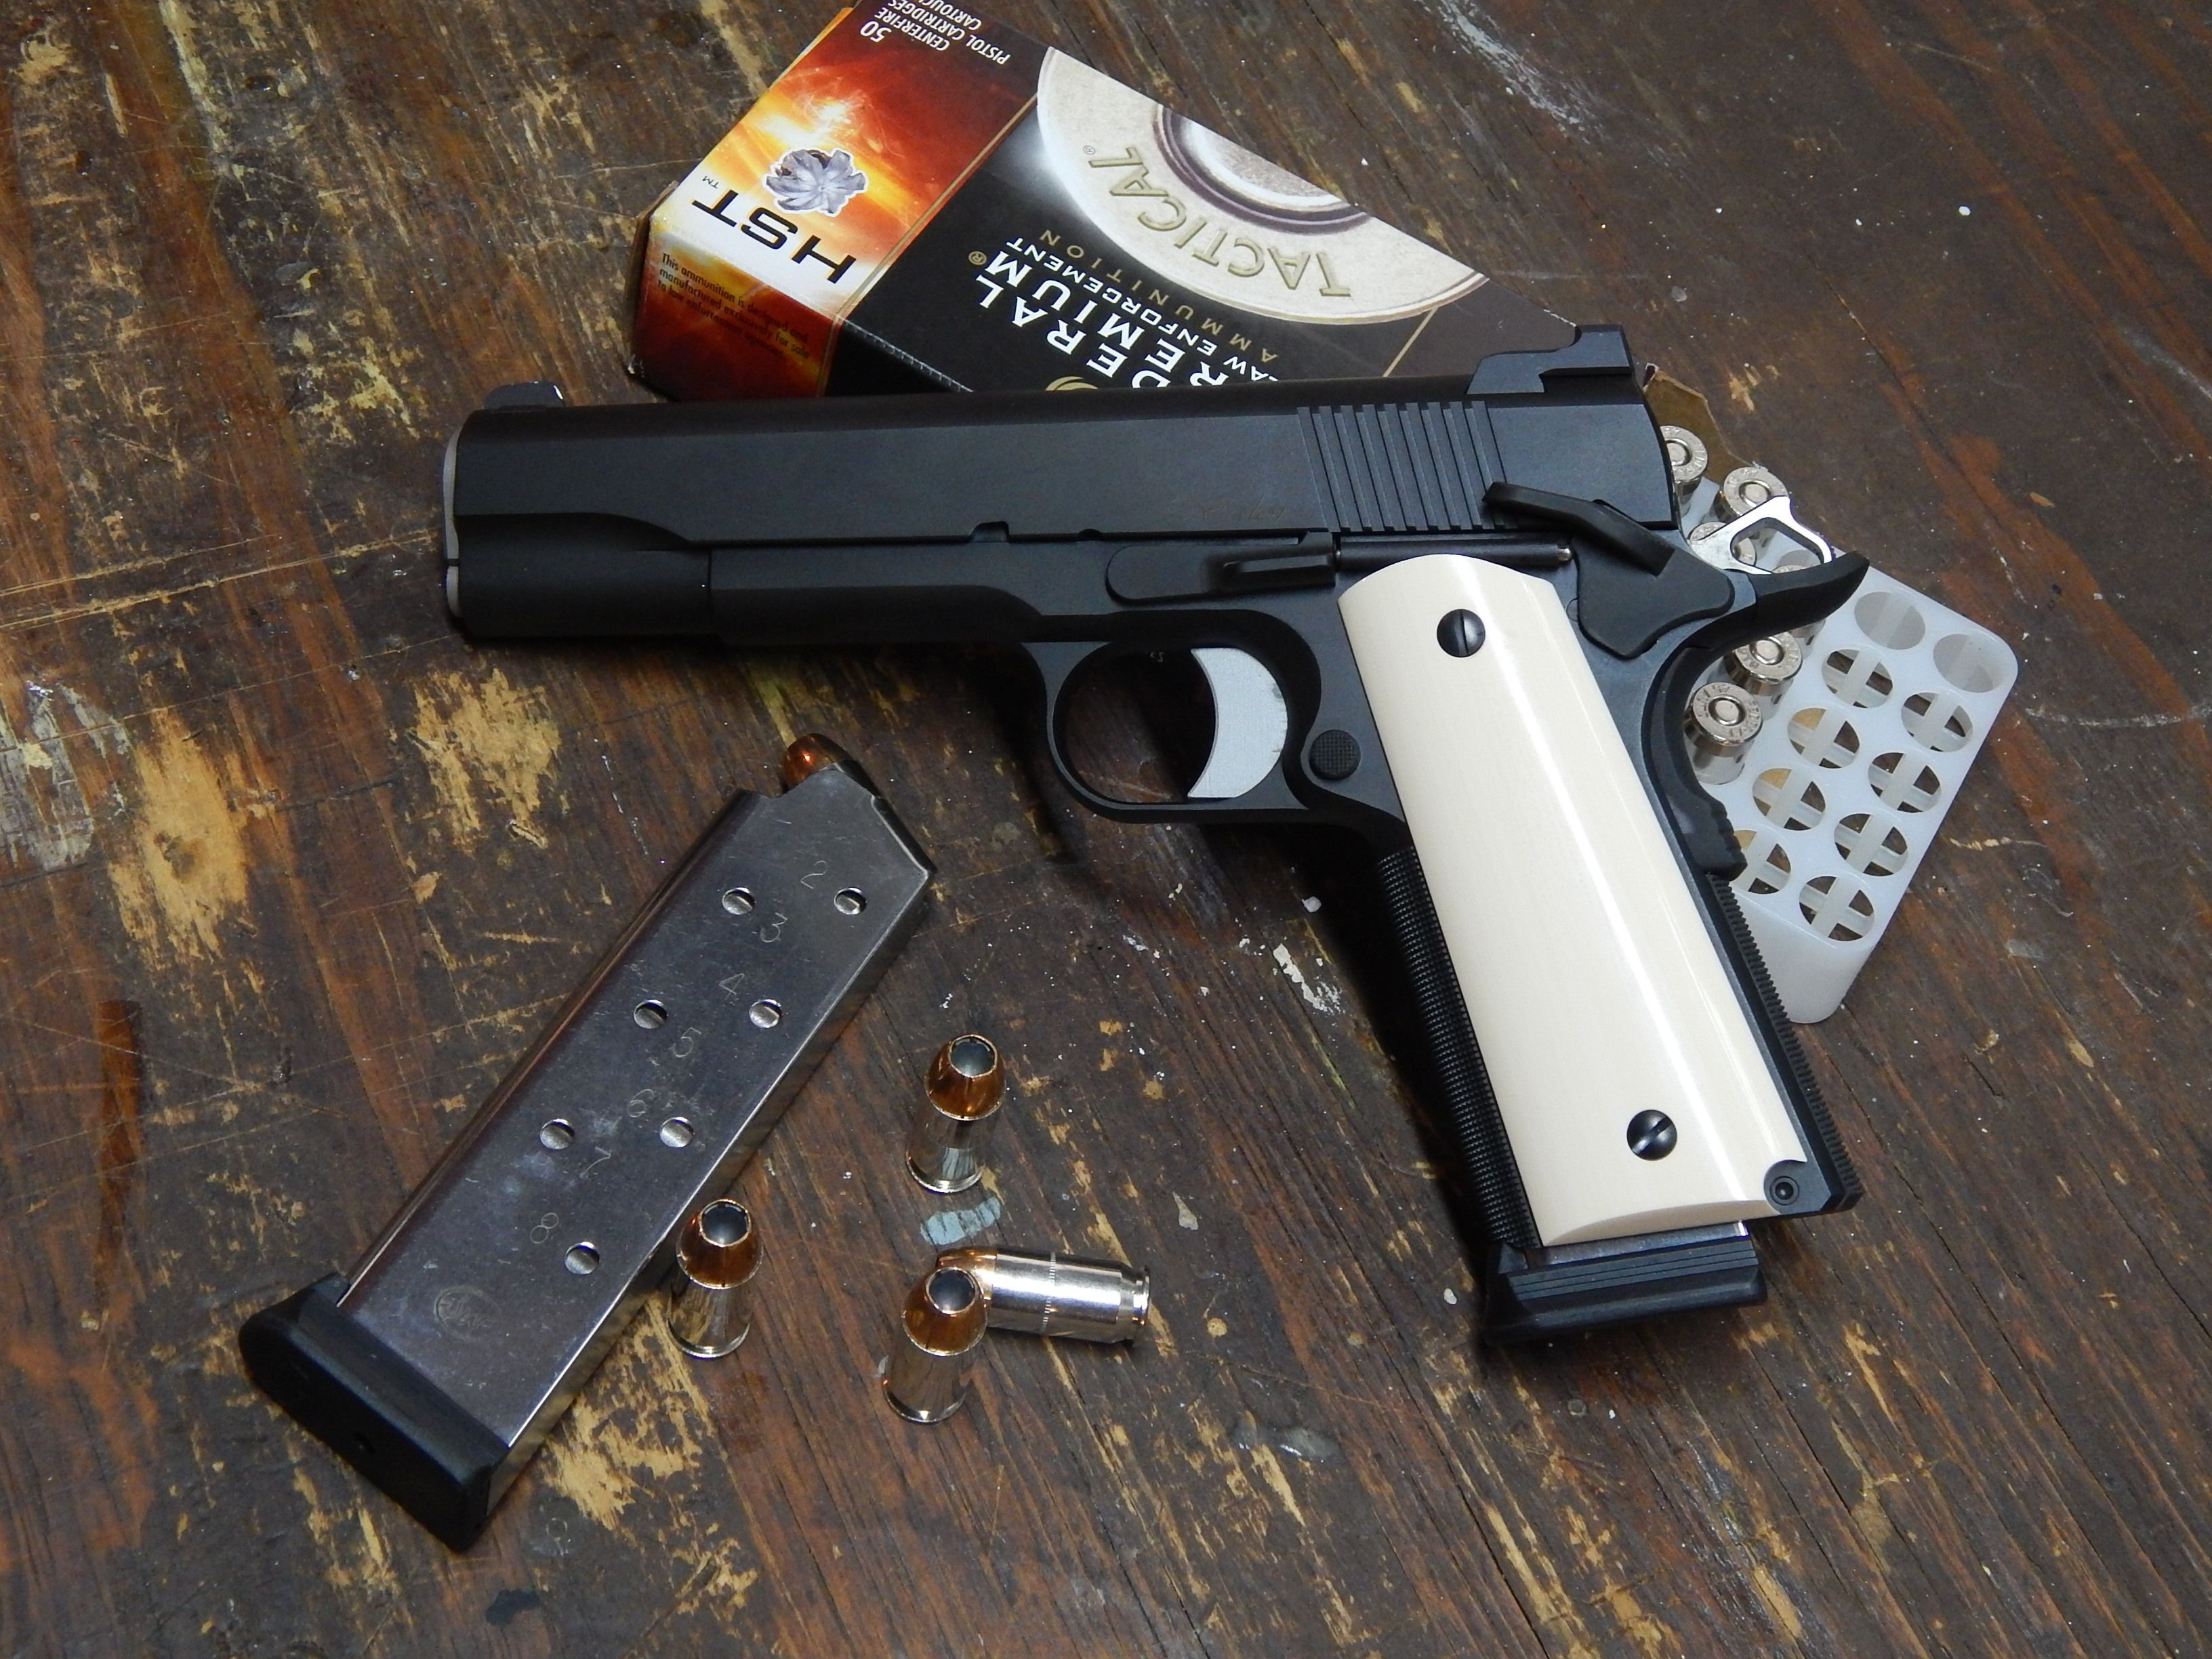 Dan Wesson Valor with Ivory Grips Loading that magazine is a pain! Get your Magazine speedloader today! http://www.amazon.com/shops/raeind